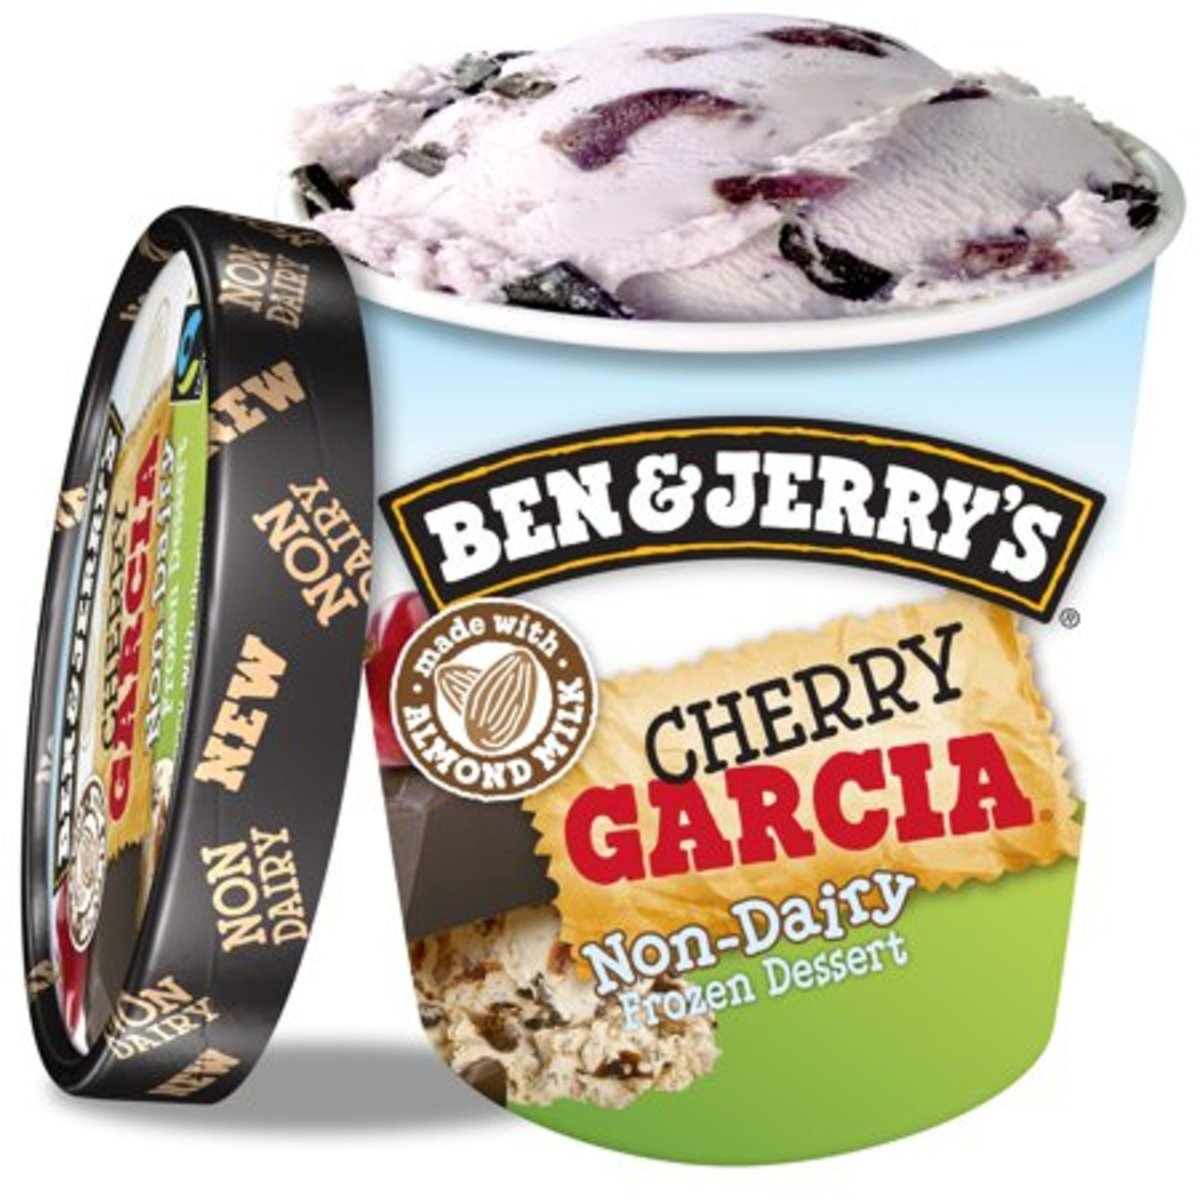 In 1987, Ben & Jerry's Ice Cream and the Grateful Dead's Jerry Garcia announced a new ice cream flavor—Cherry Garcia.